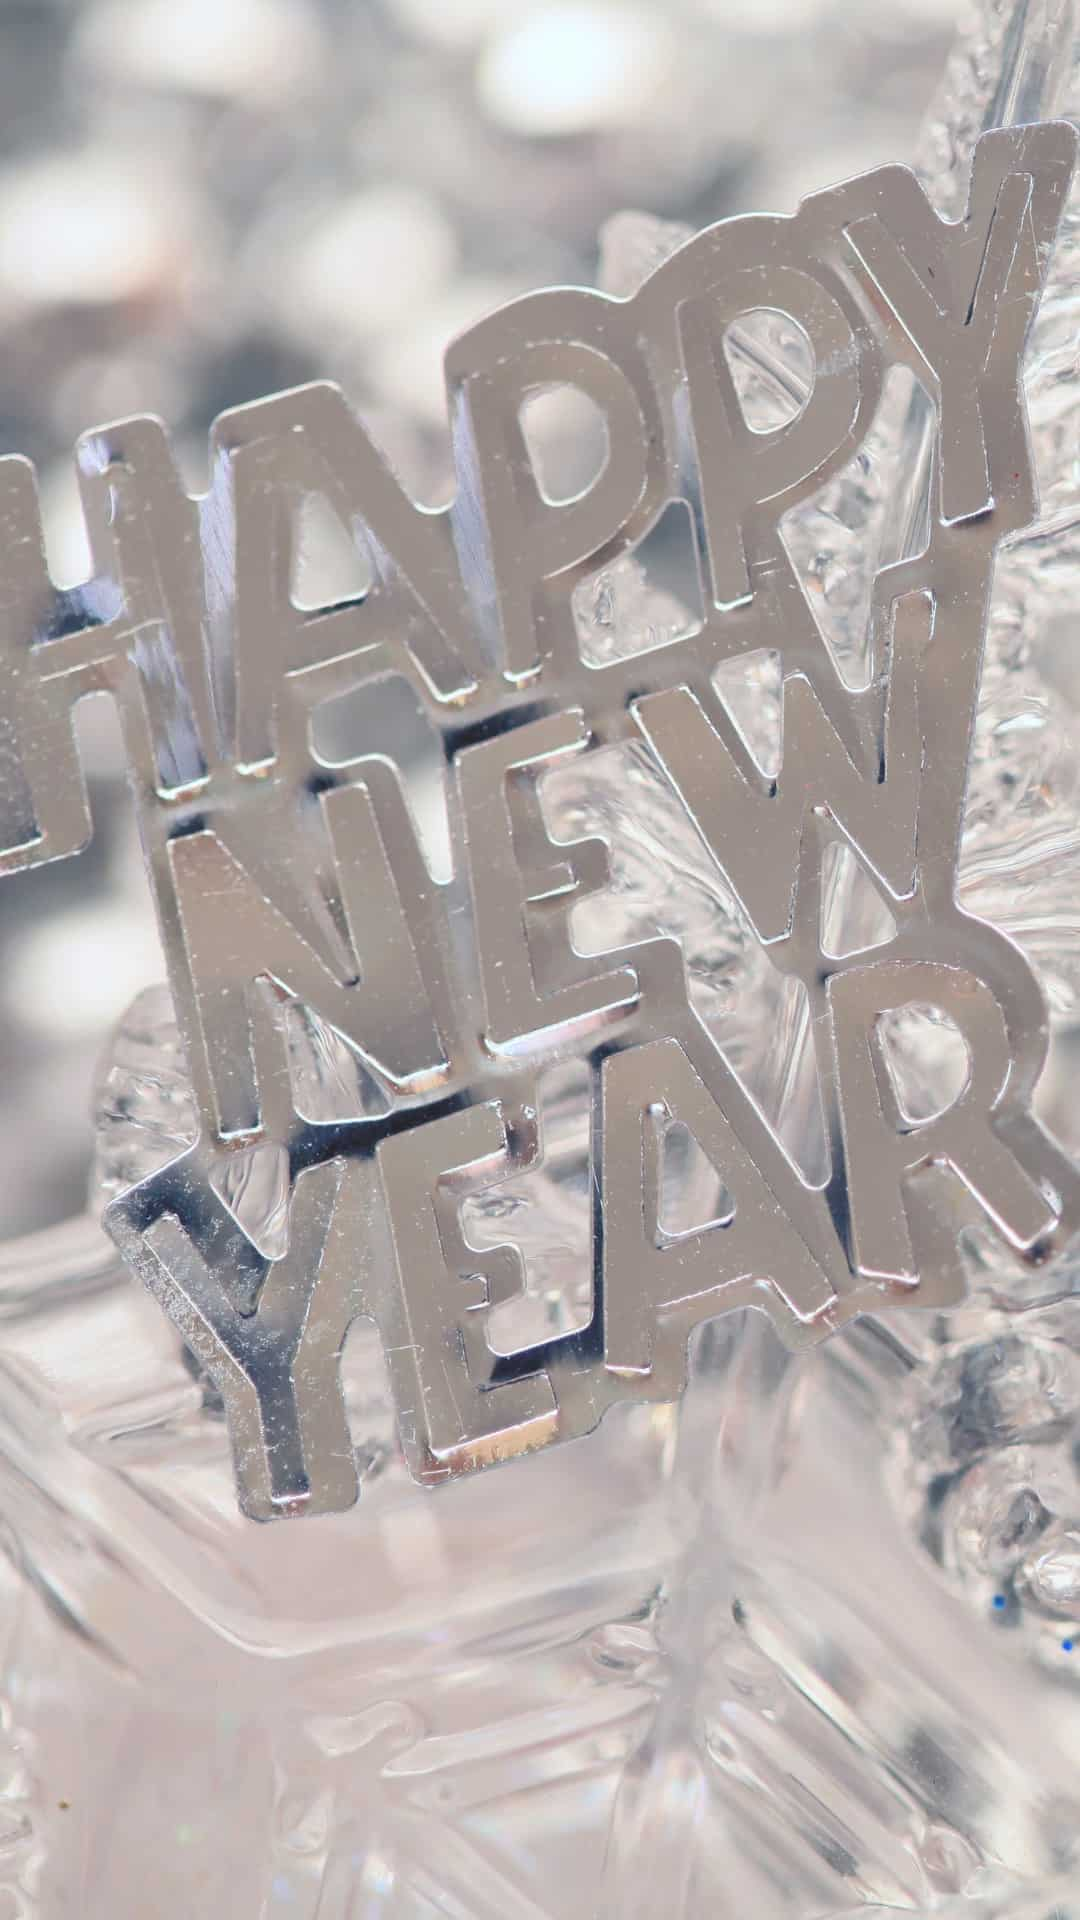 Happy New Years Aesthetic iPhone Wallpaper Backgrounds 9